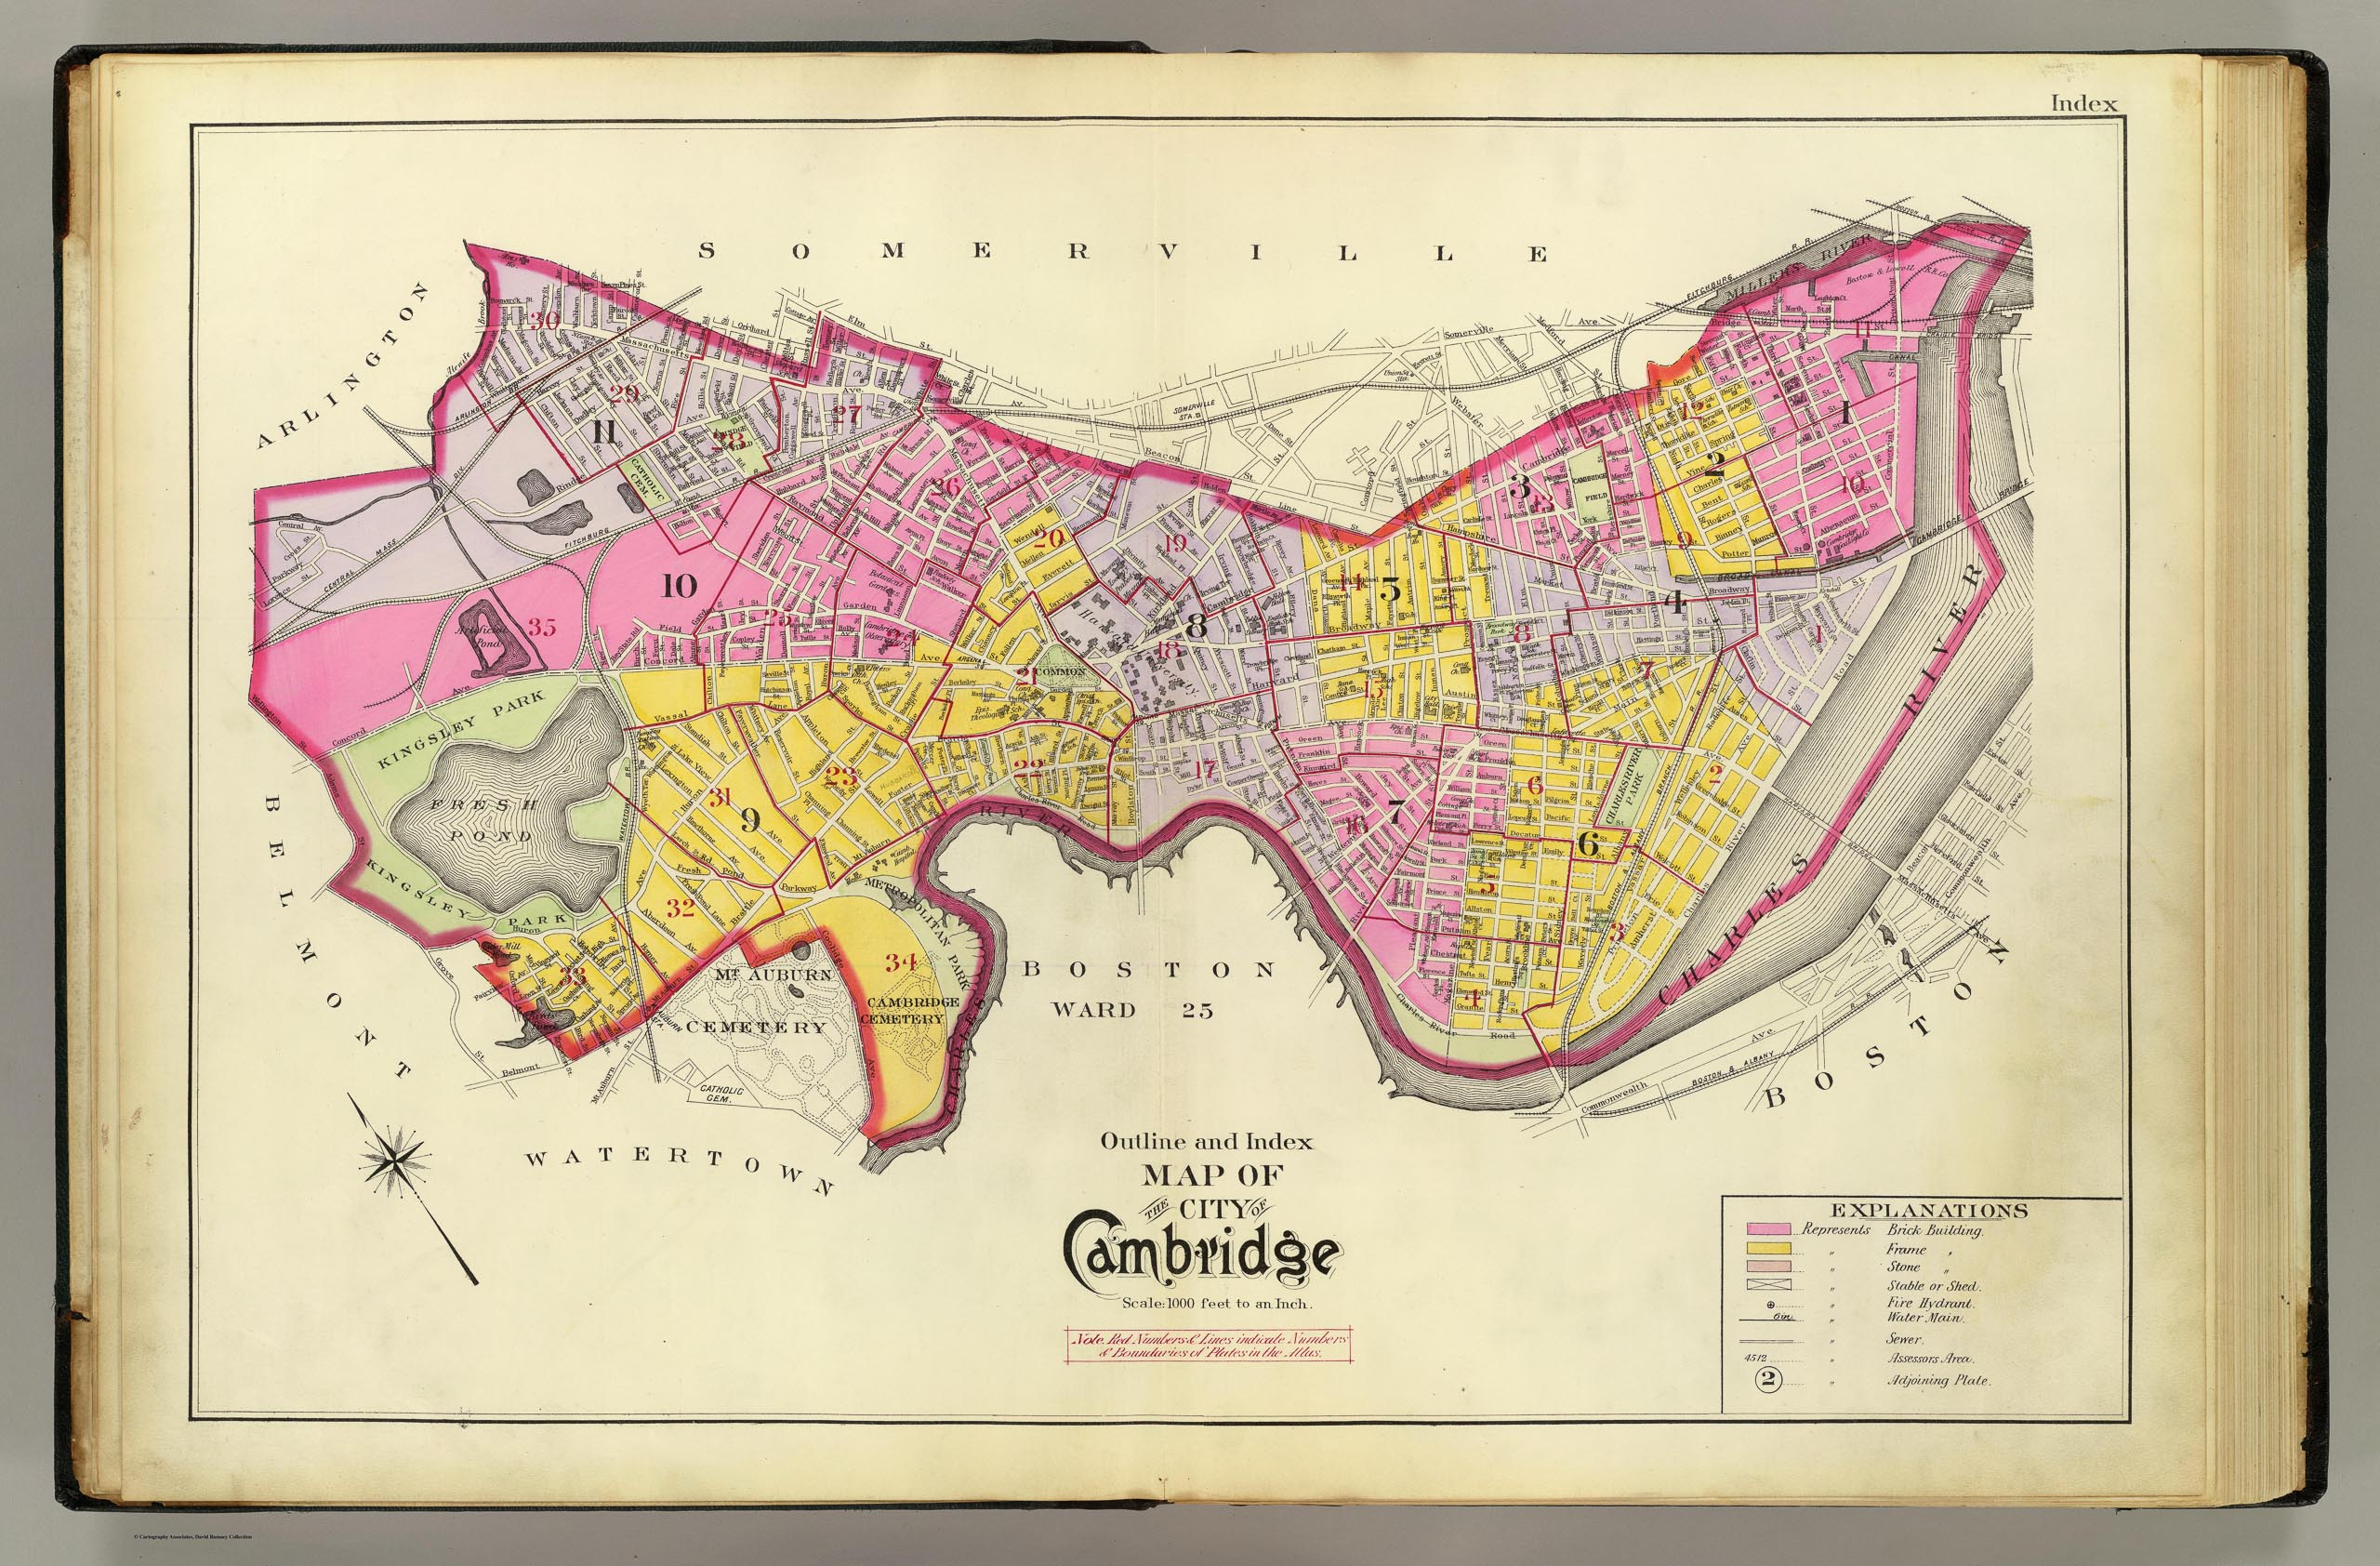 Outline and Index Map of City of Cambridge, Massachusetts, from actual Surveys and Official Plans